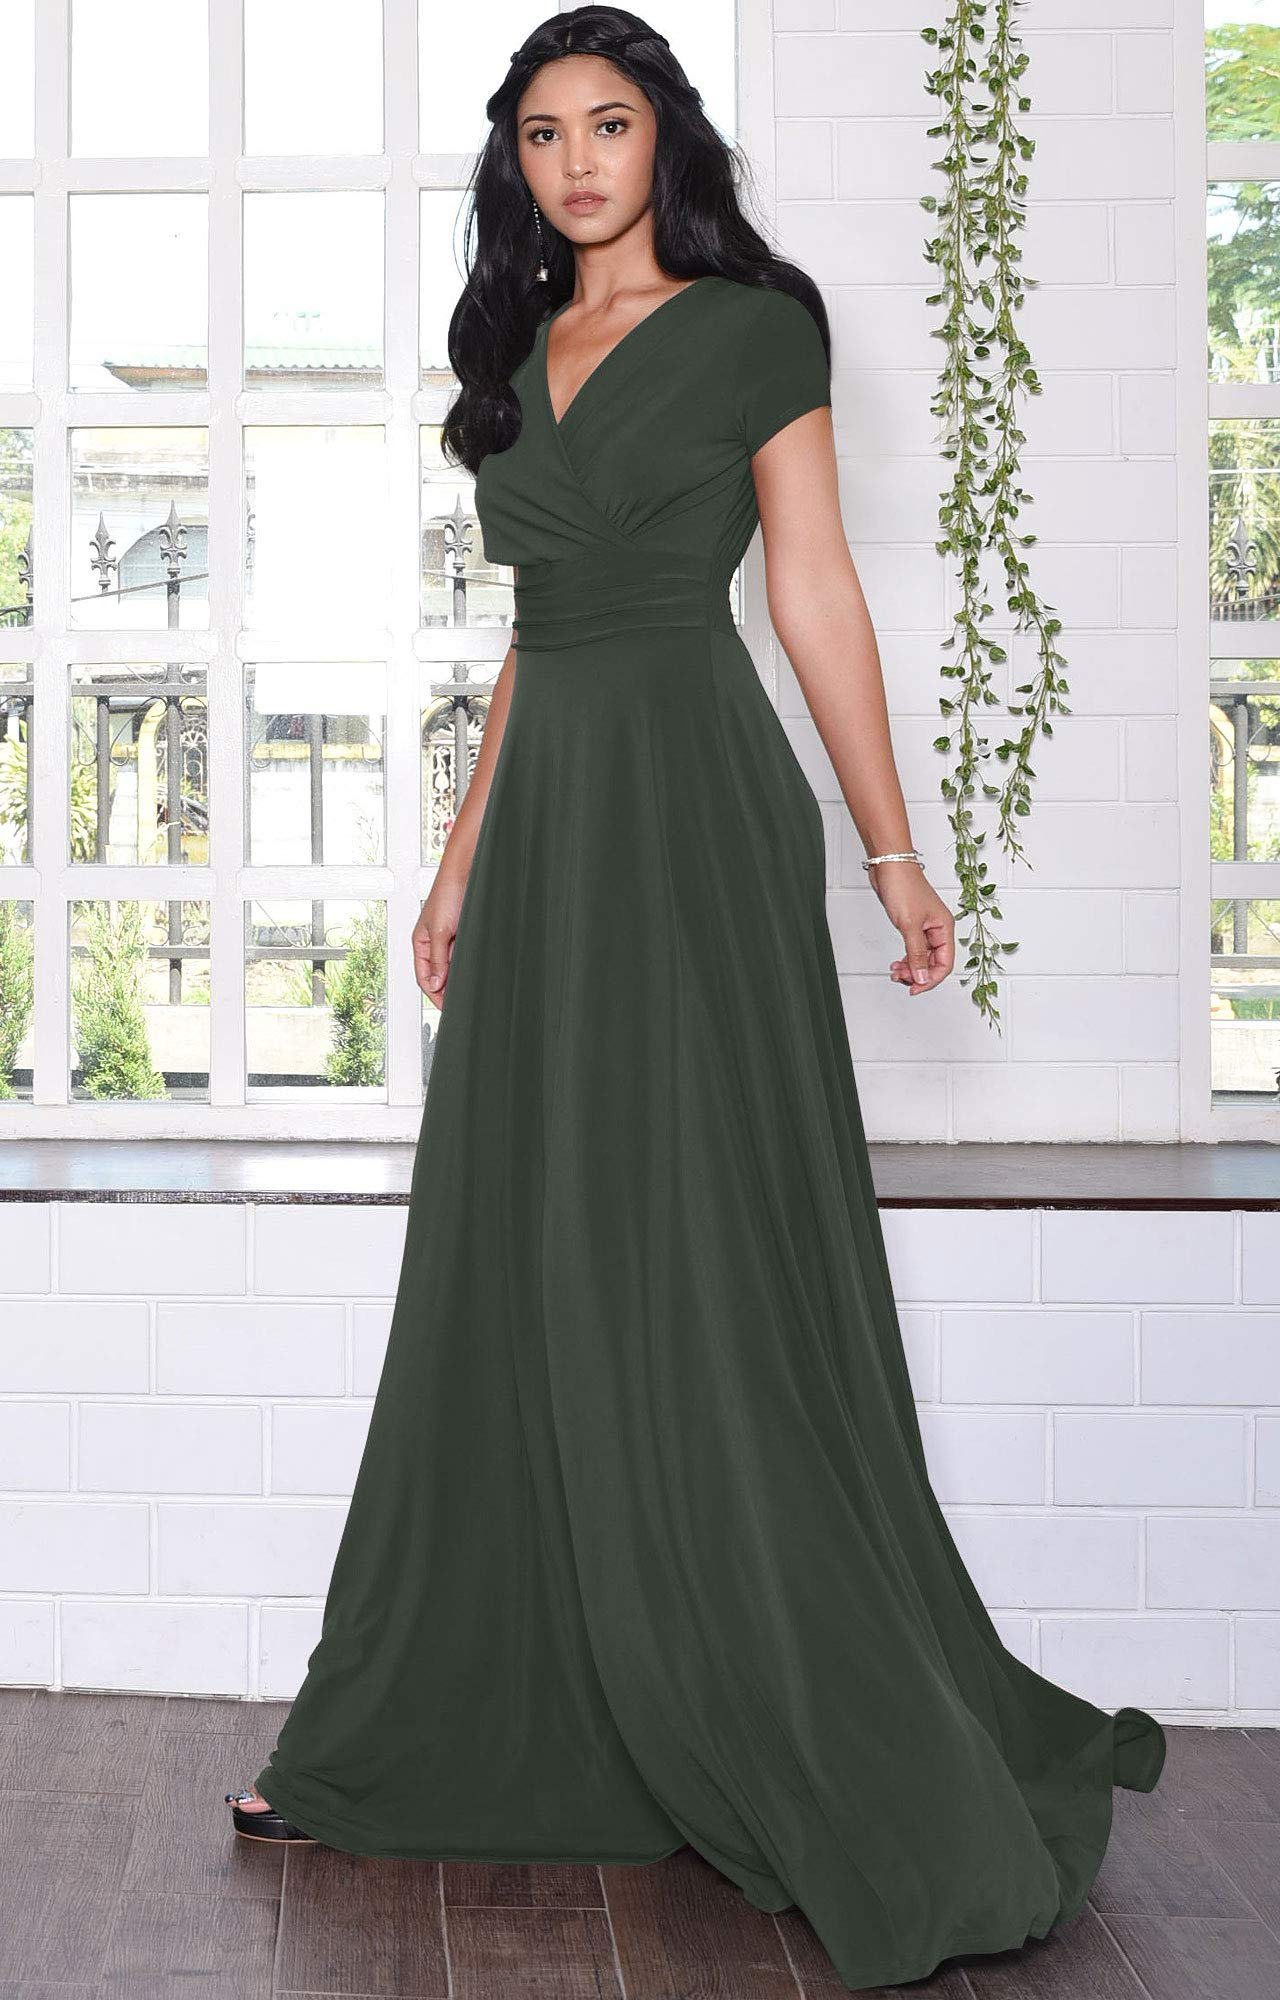 421e46c8ad ... Flowy Cocktail Slimming Summer Sexy Casual Formal Sun Sundress Work  Cute Gown Gowns Maxi Dress Dresses